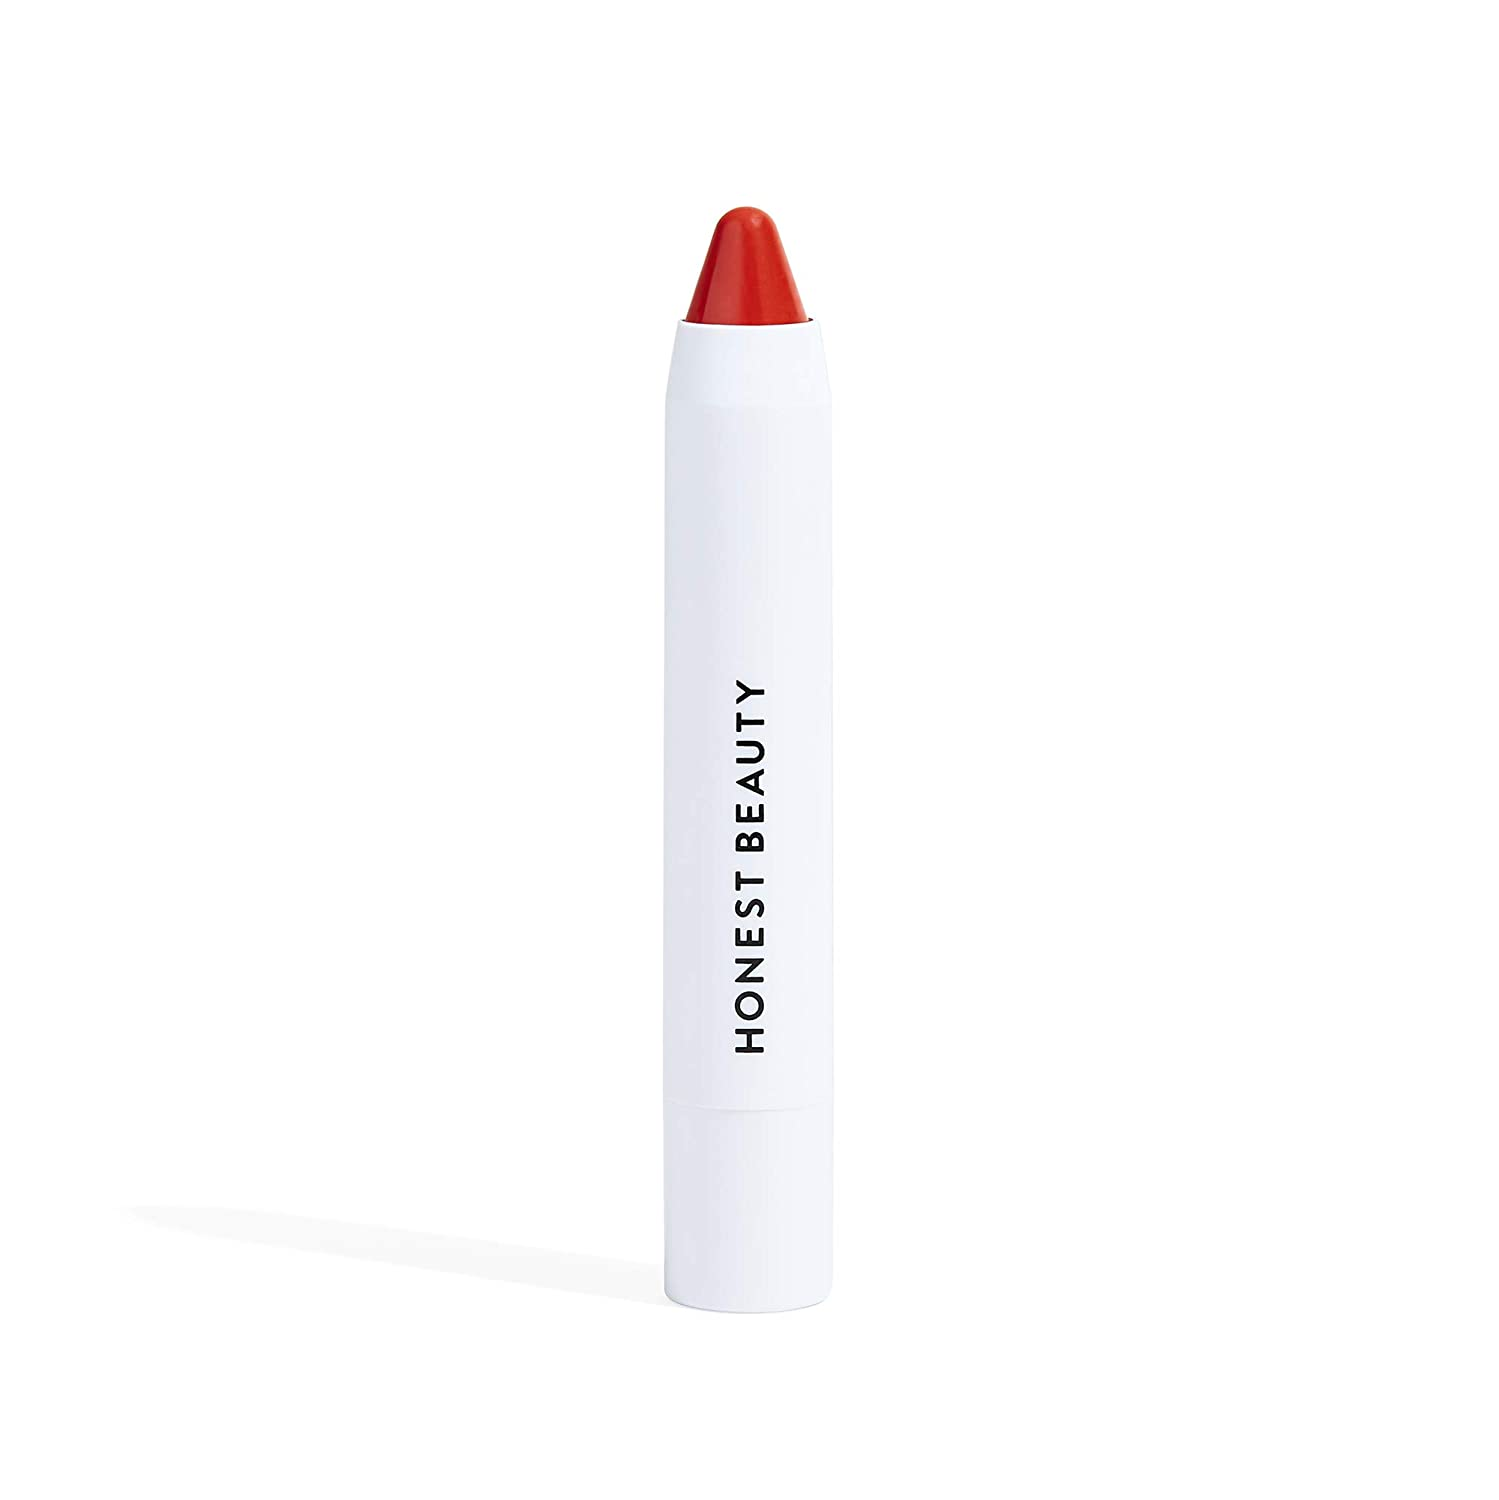 Honest Beauty Lip Crayon-Lush Sheer, Coral | Sheer Color & Subtle Shine with Coconut Oil & Shea Butter | Paraben Free, Silicone Free, Dermatologist Tested, Cruelty Free | 0.105 oz.